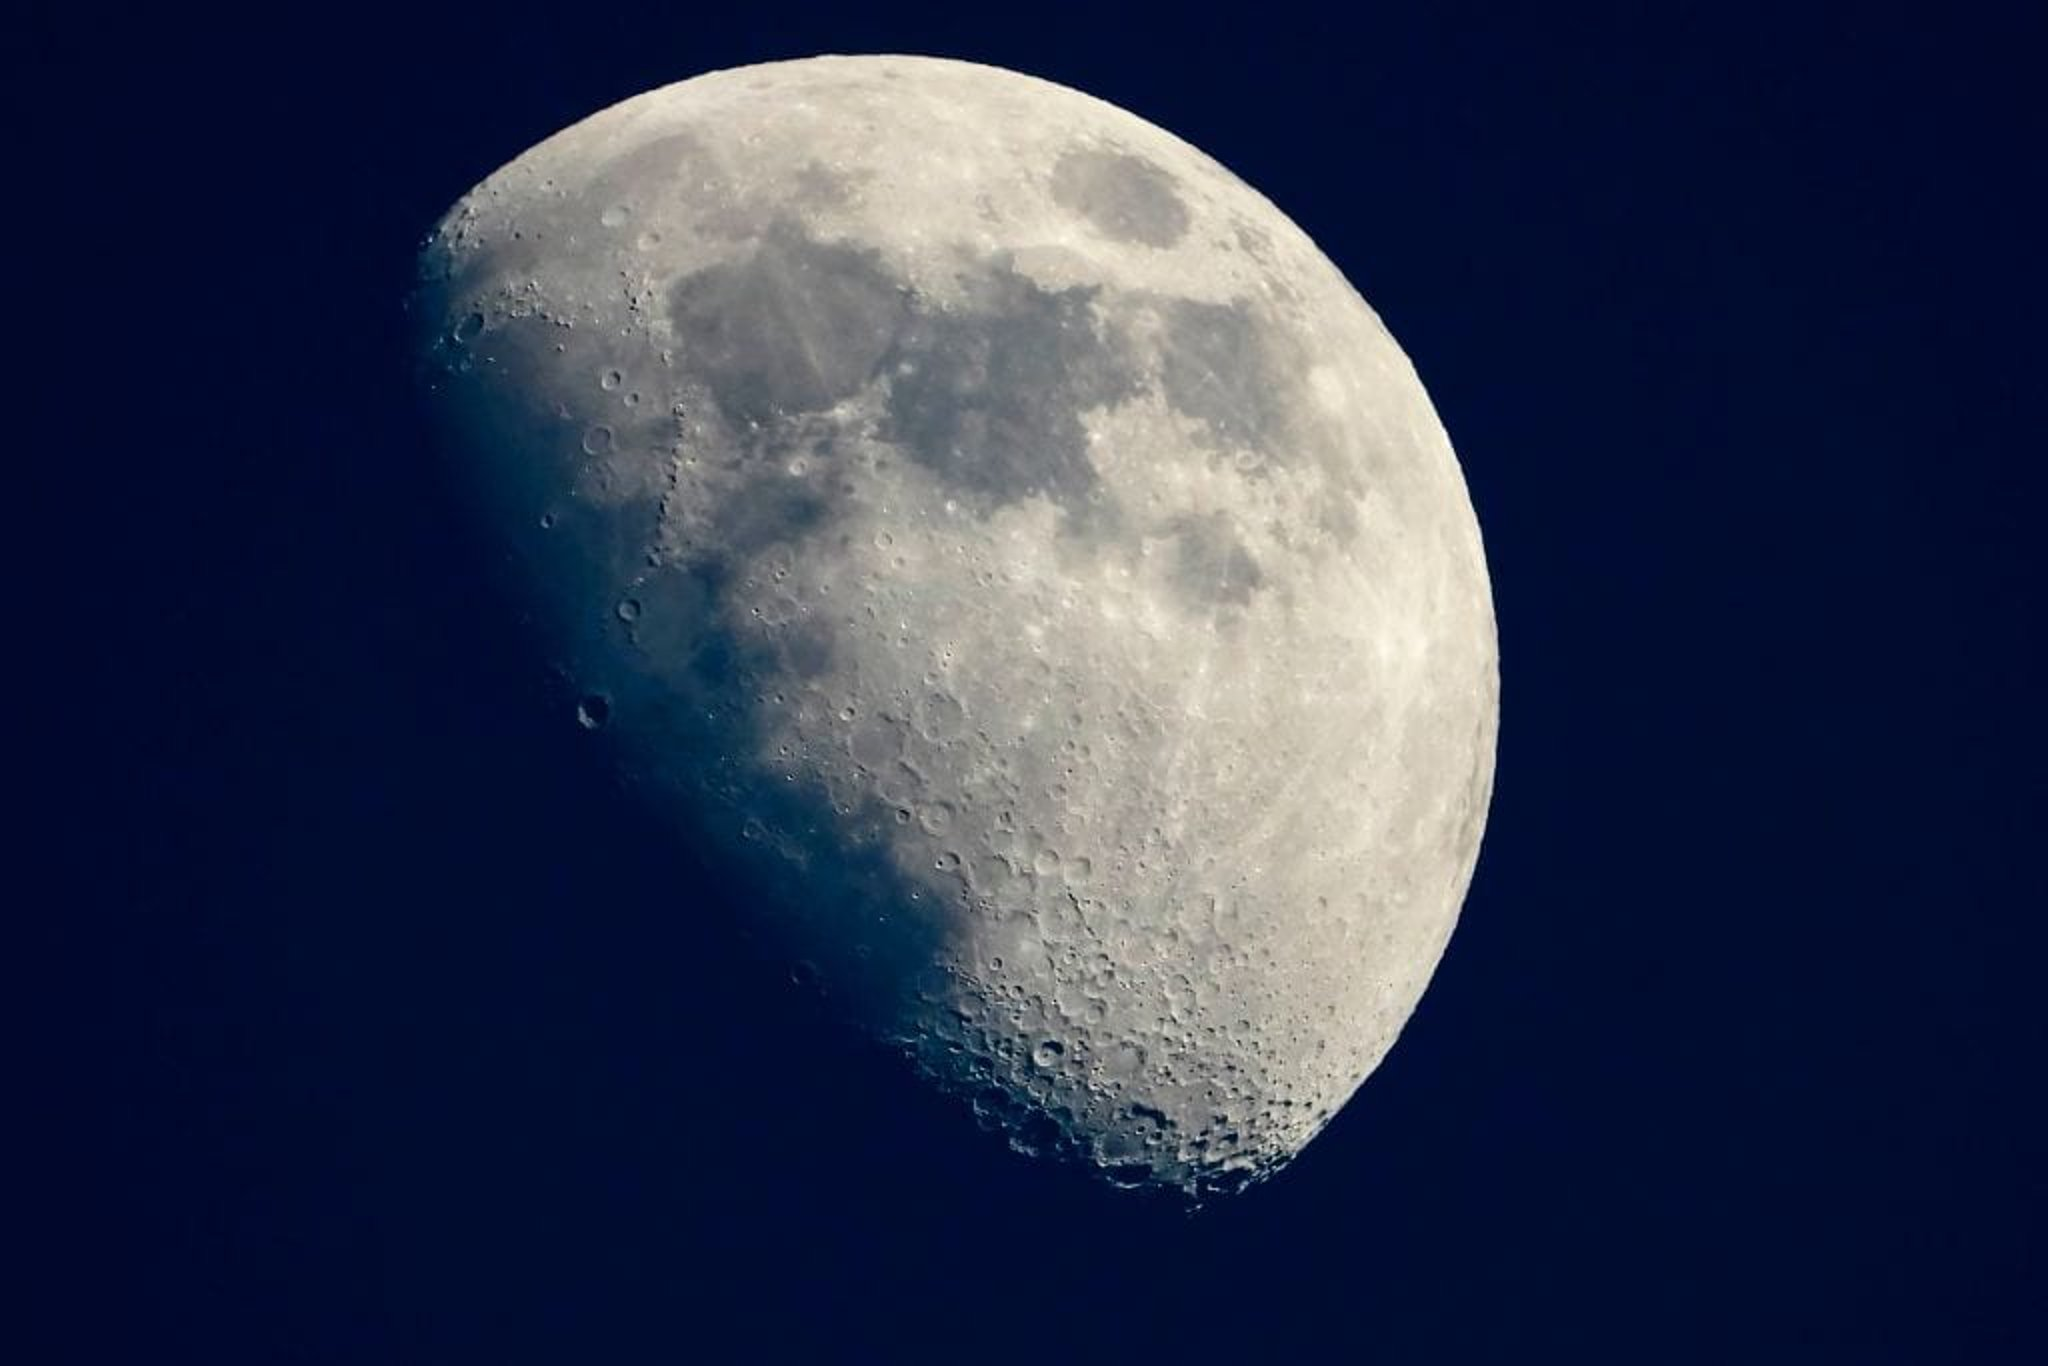 NASA has hinted at an exciting new discovery about the moon - here's what we know